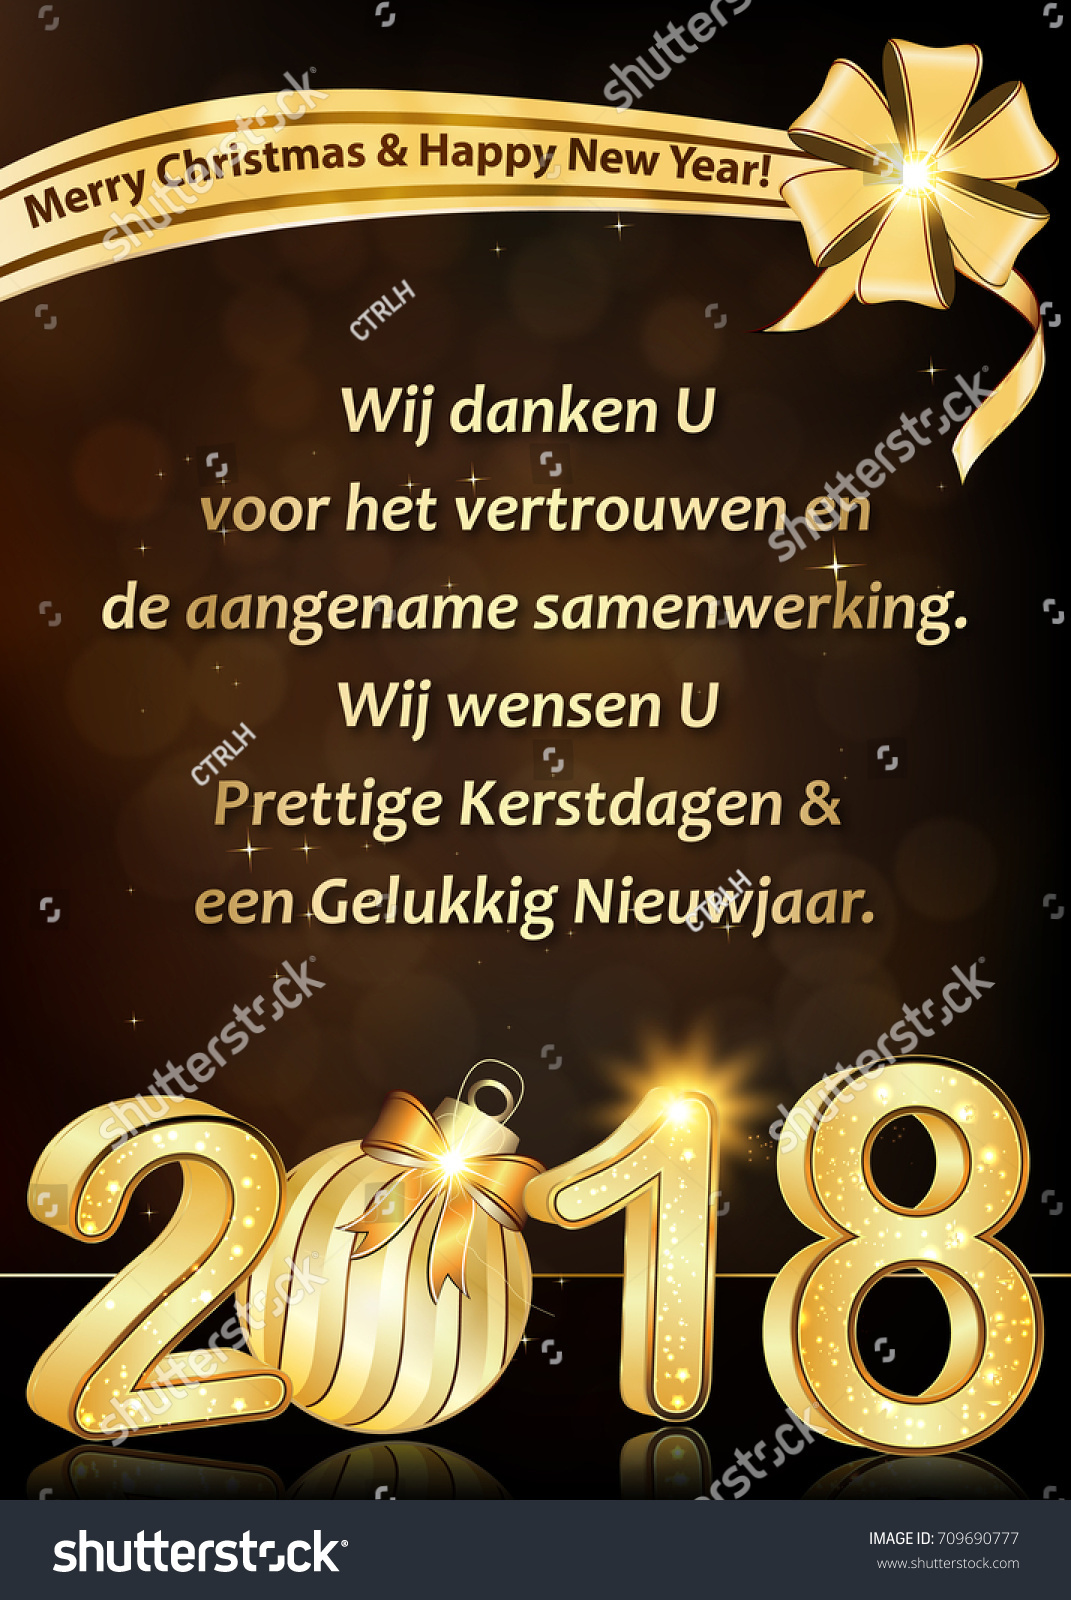 Thank you dutch business new year stock illustration 709690777 thank you dutch business new year greeting card we wish to thank you for your kristyandbryce Gallery